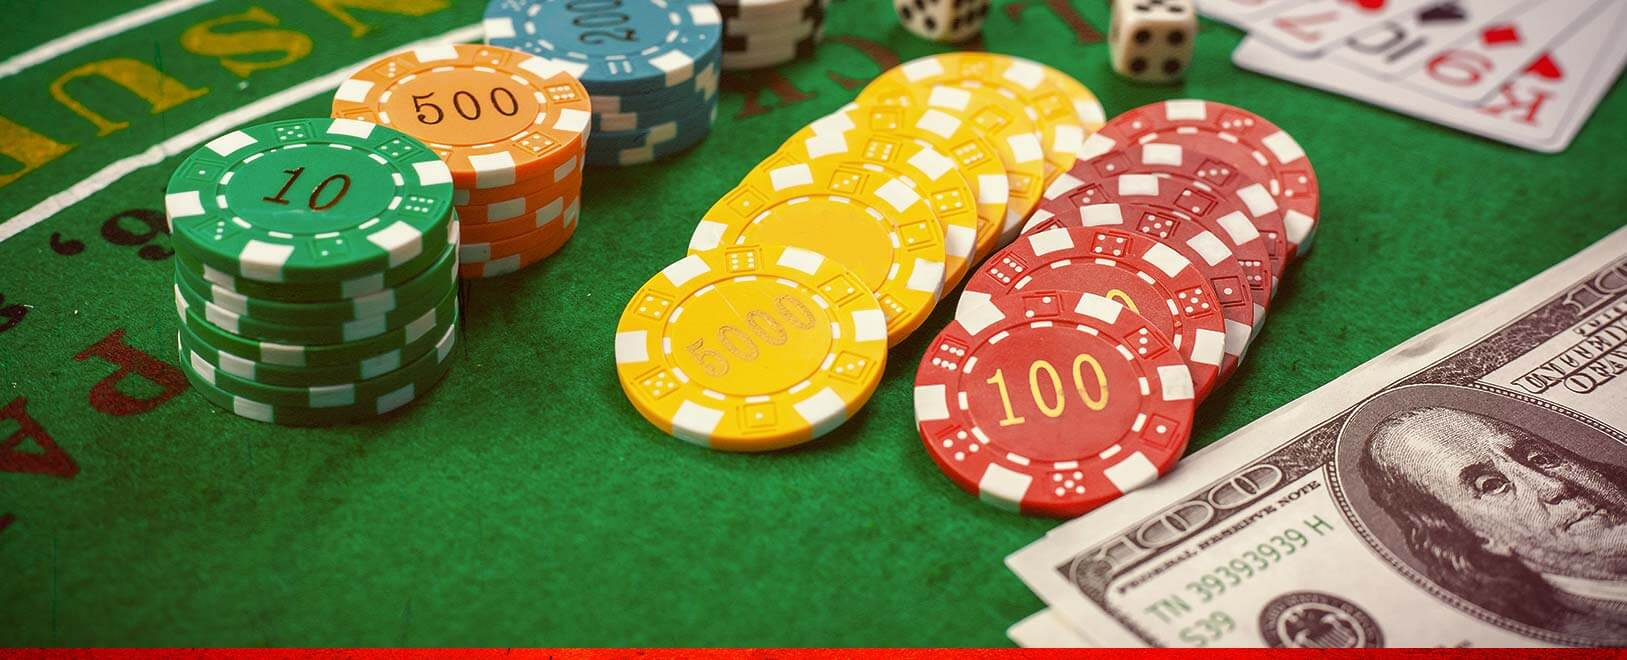 Multi-Table Poker Tournament Guide Part 1: The Early Stage